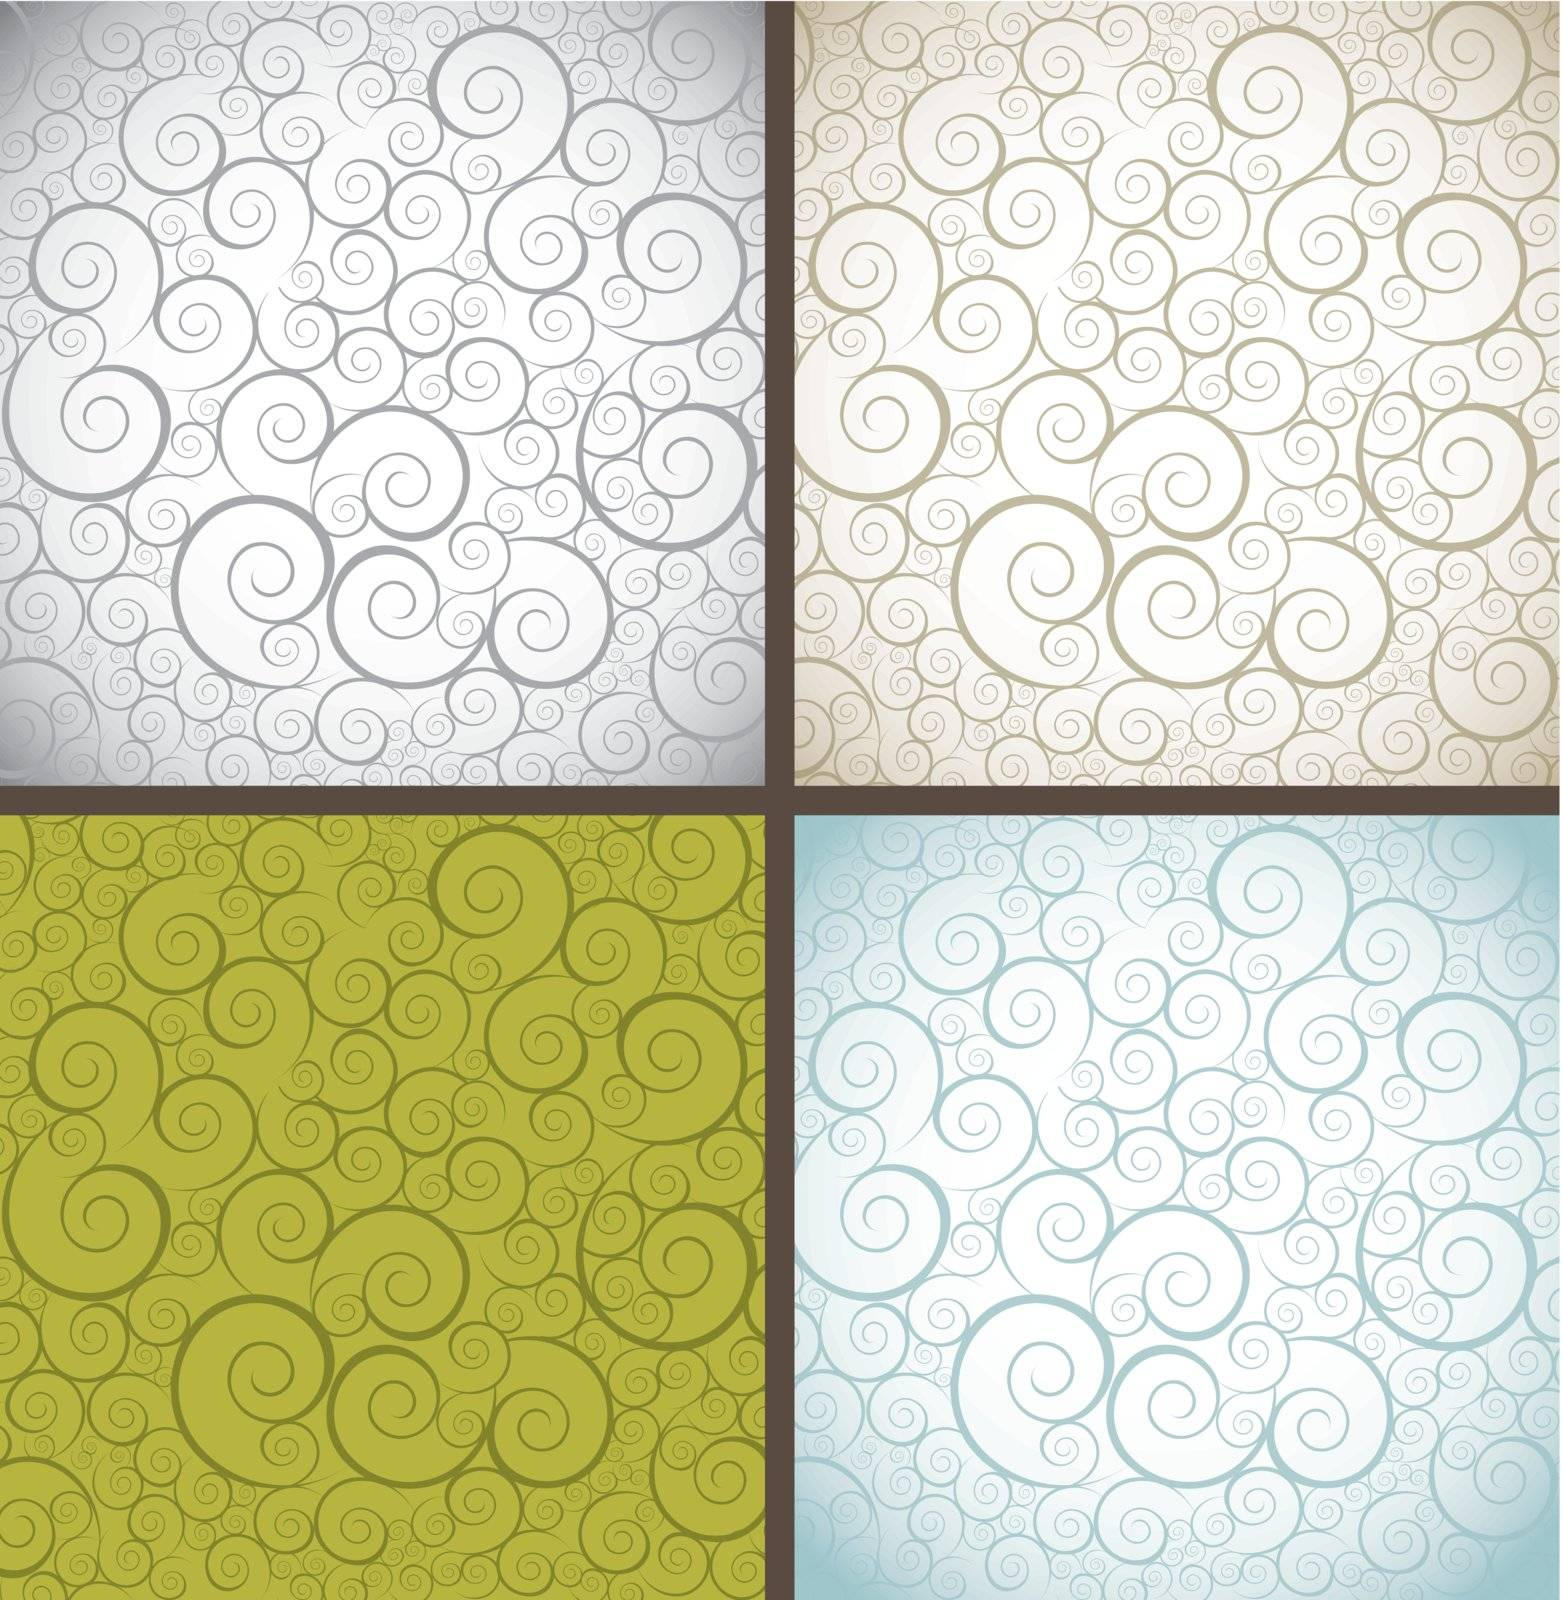 vintage and cute ornament texture backgrounds. vector illustration